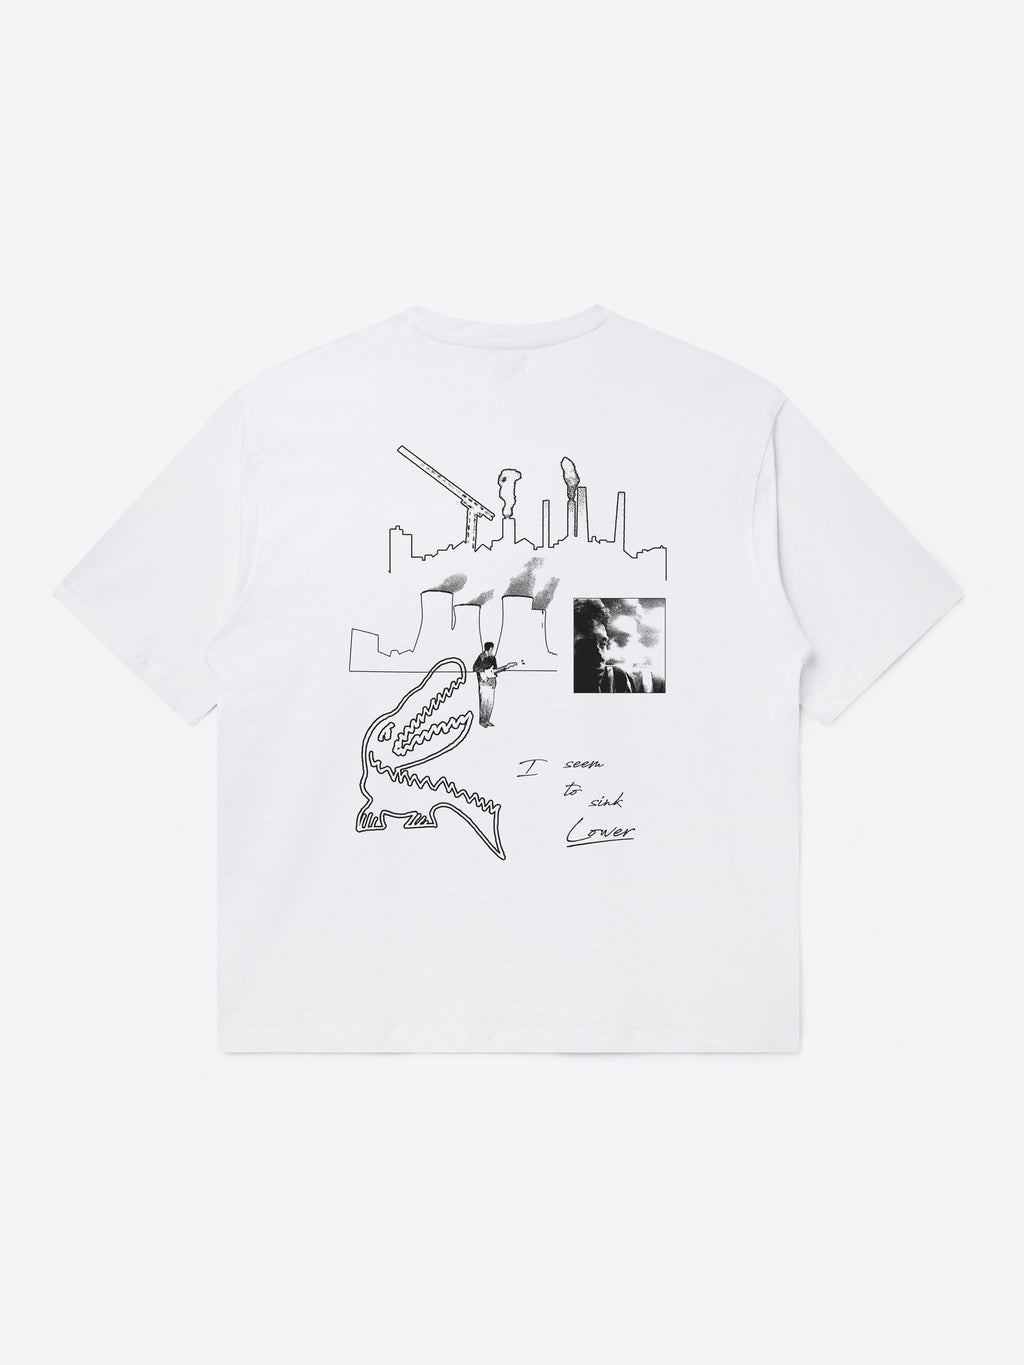 King Krule T-Shirt - White